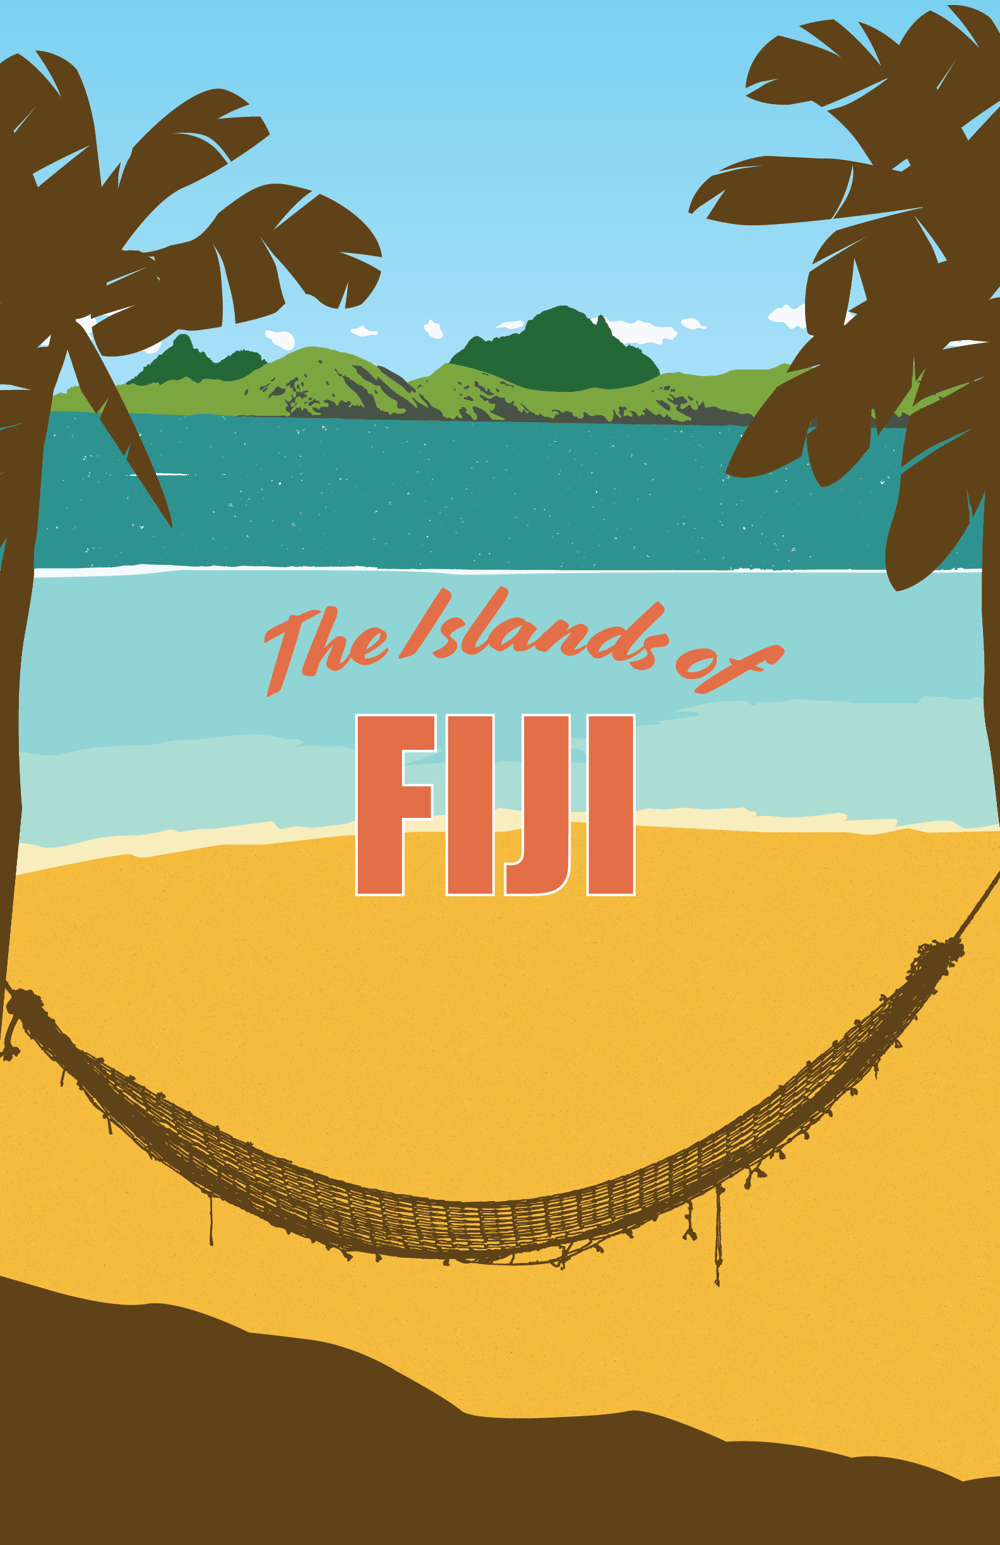 Fiji Travel Poster - image 2 - student project